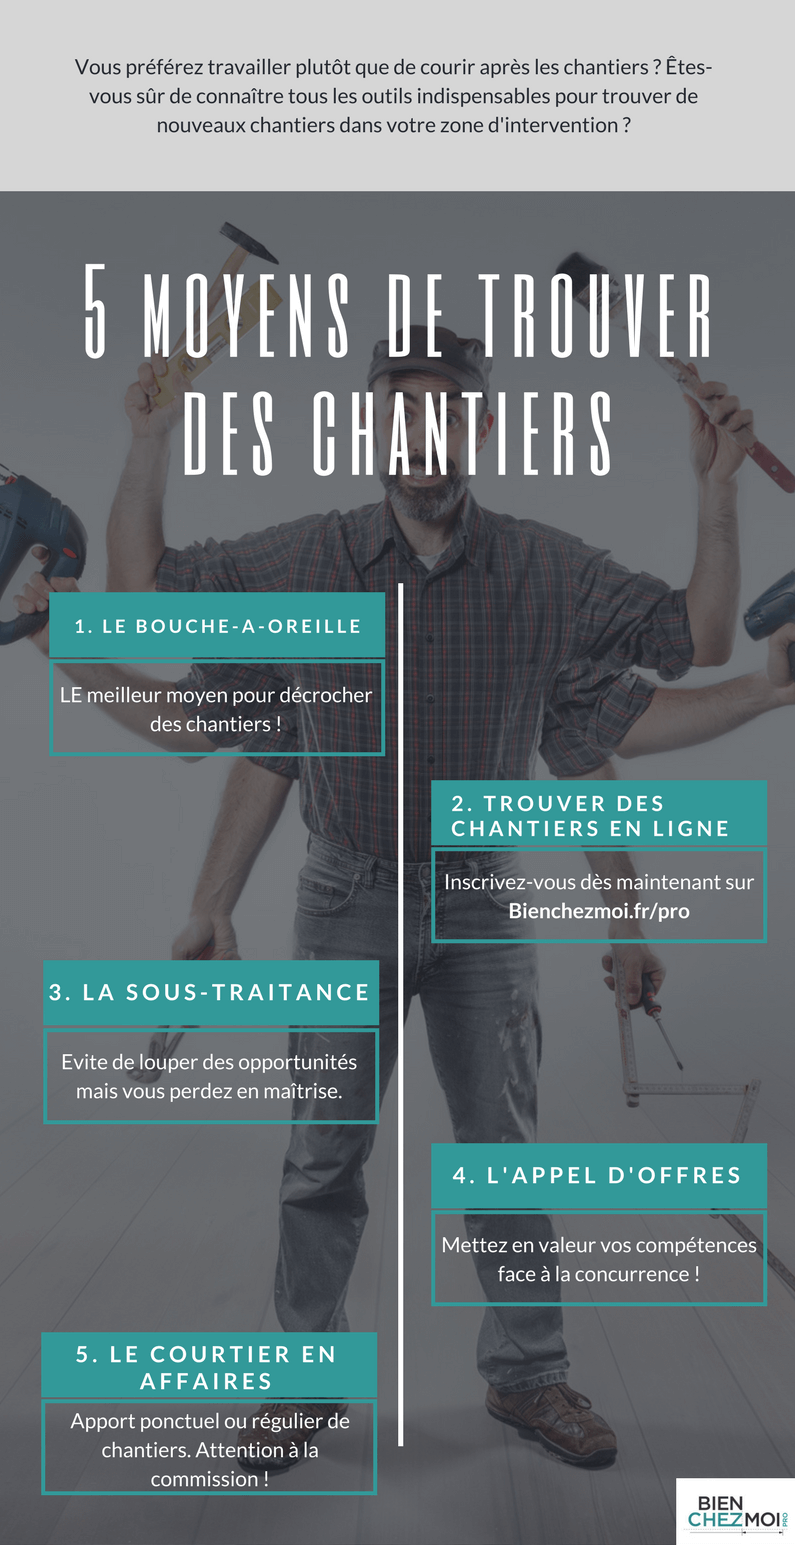 infographie comment trouver des chantiers dans le. Black Bedroom Furniture Sets. Home Design Ideas